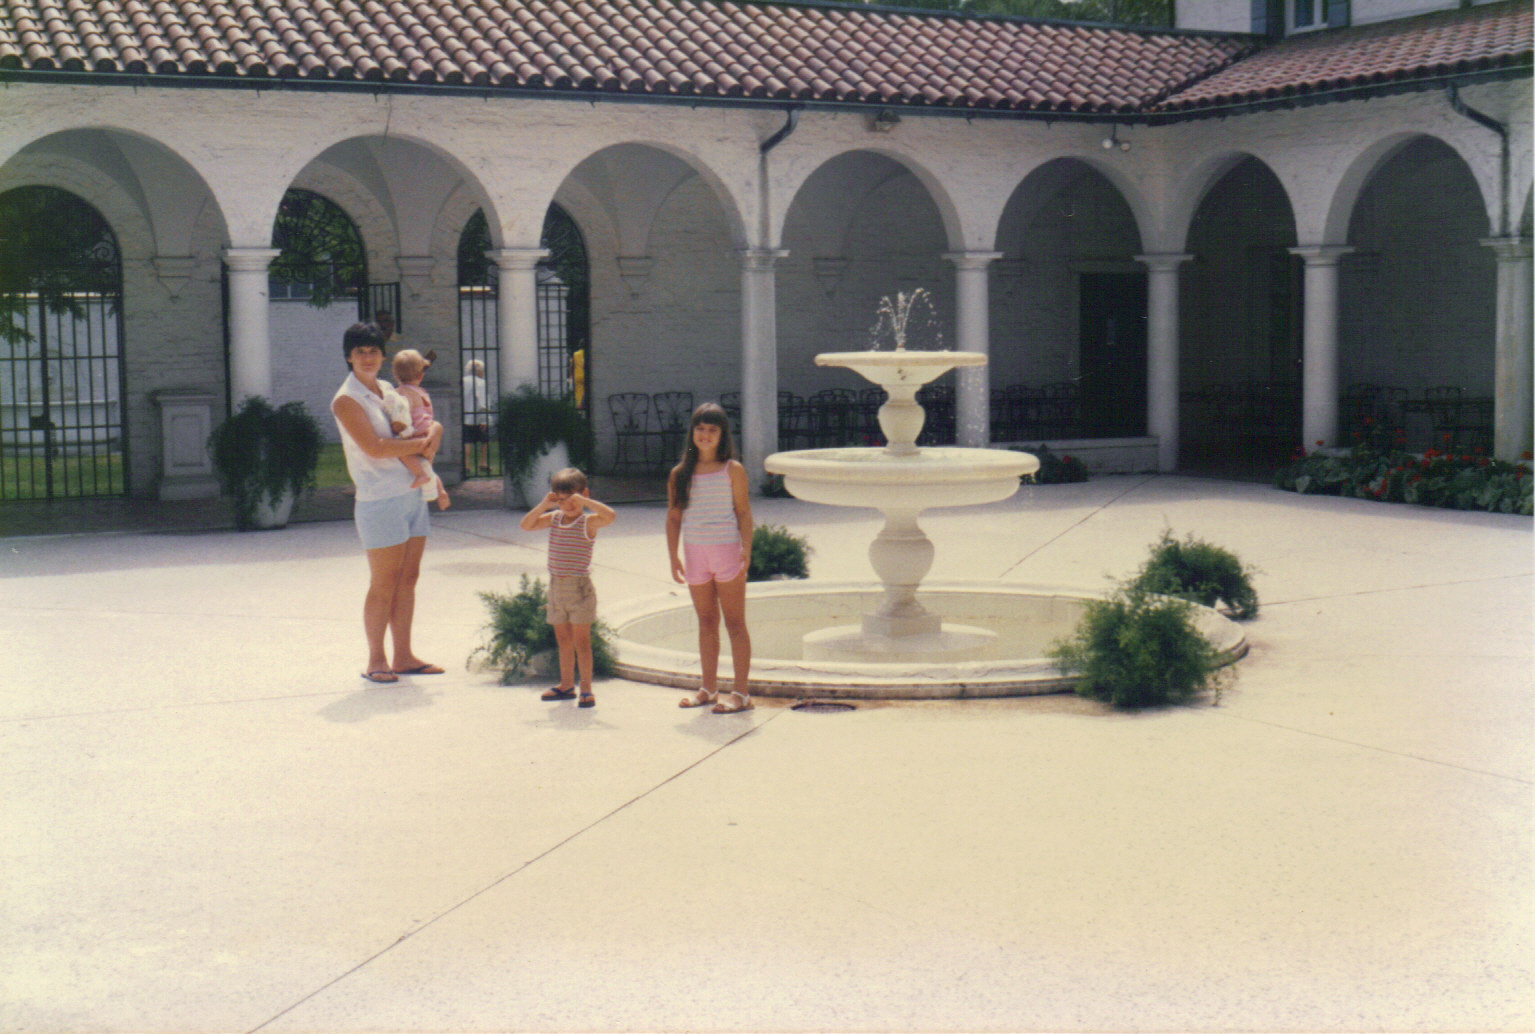 Me and the children in the courtyard of an old Jeckyl Island, GA mansion...cir. 1986